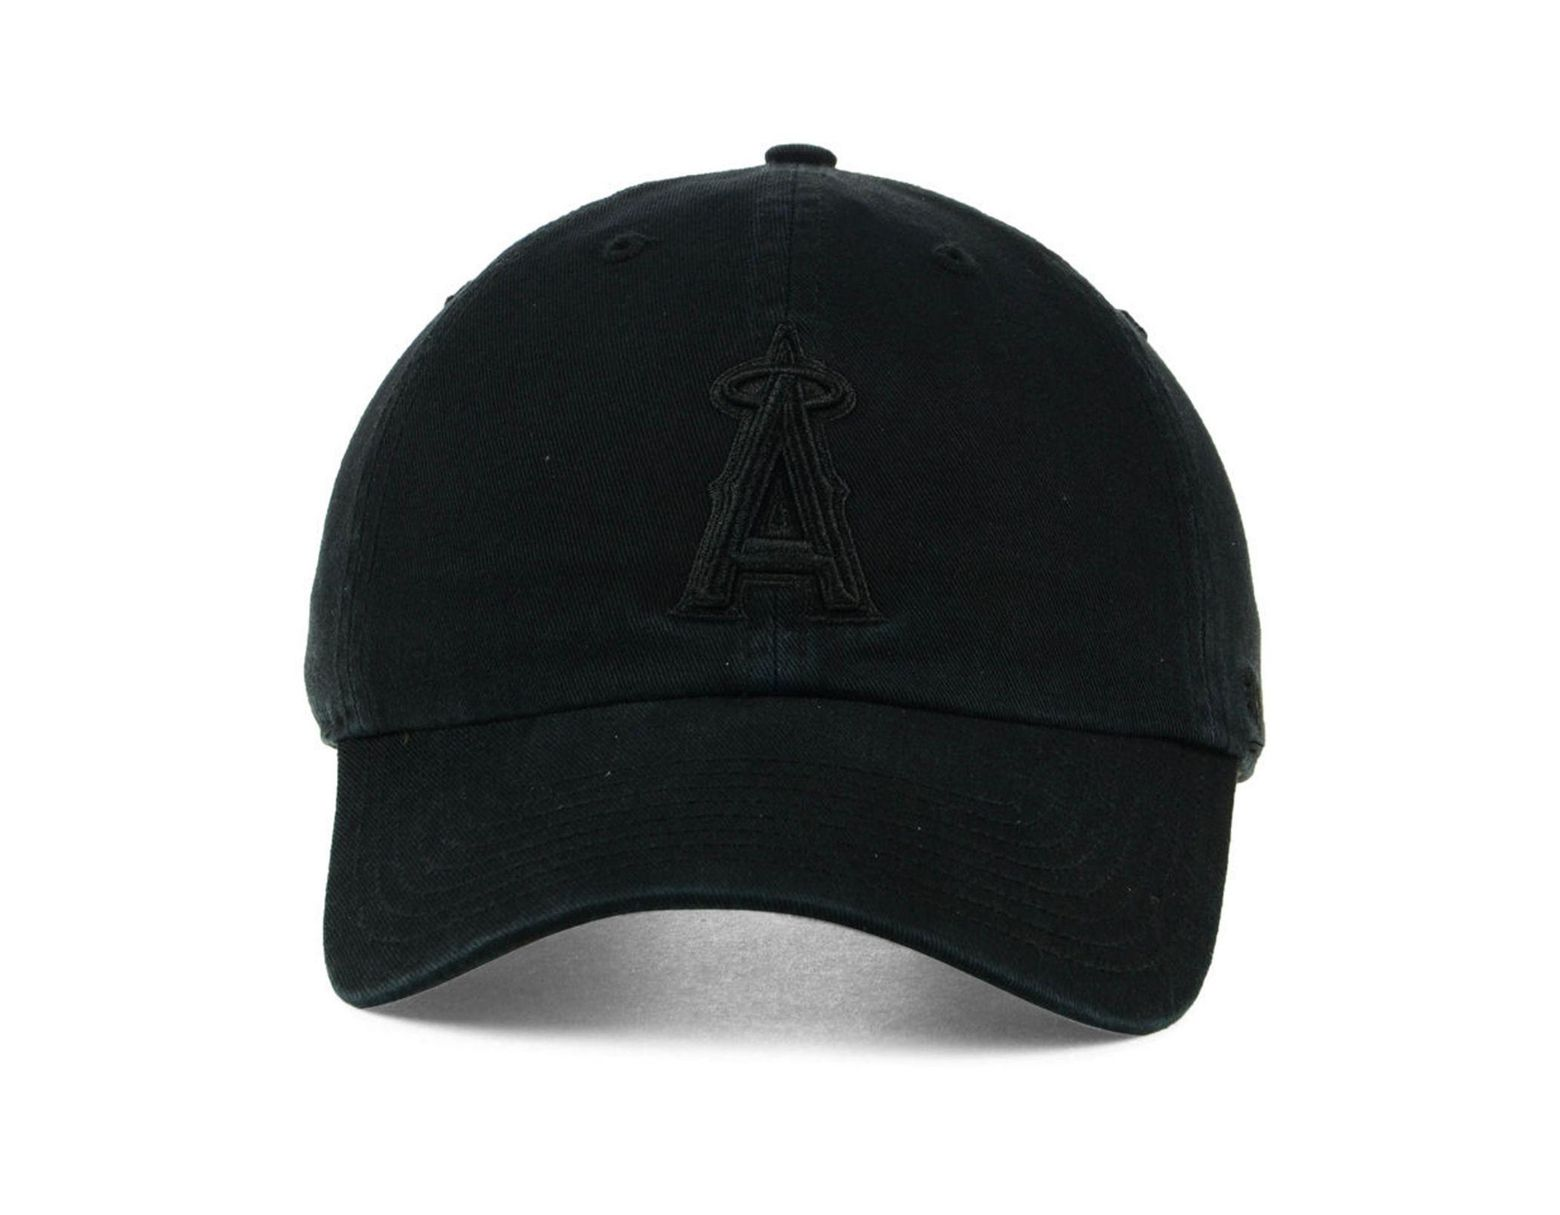 sale retailer 73483 b55cd 47 Brand Los Angeles Angels Black On Black Clean Up Cap in Black for Men -  Lyst